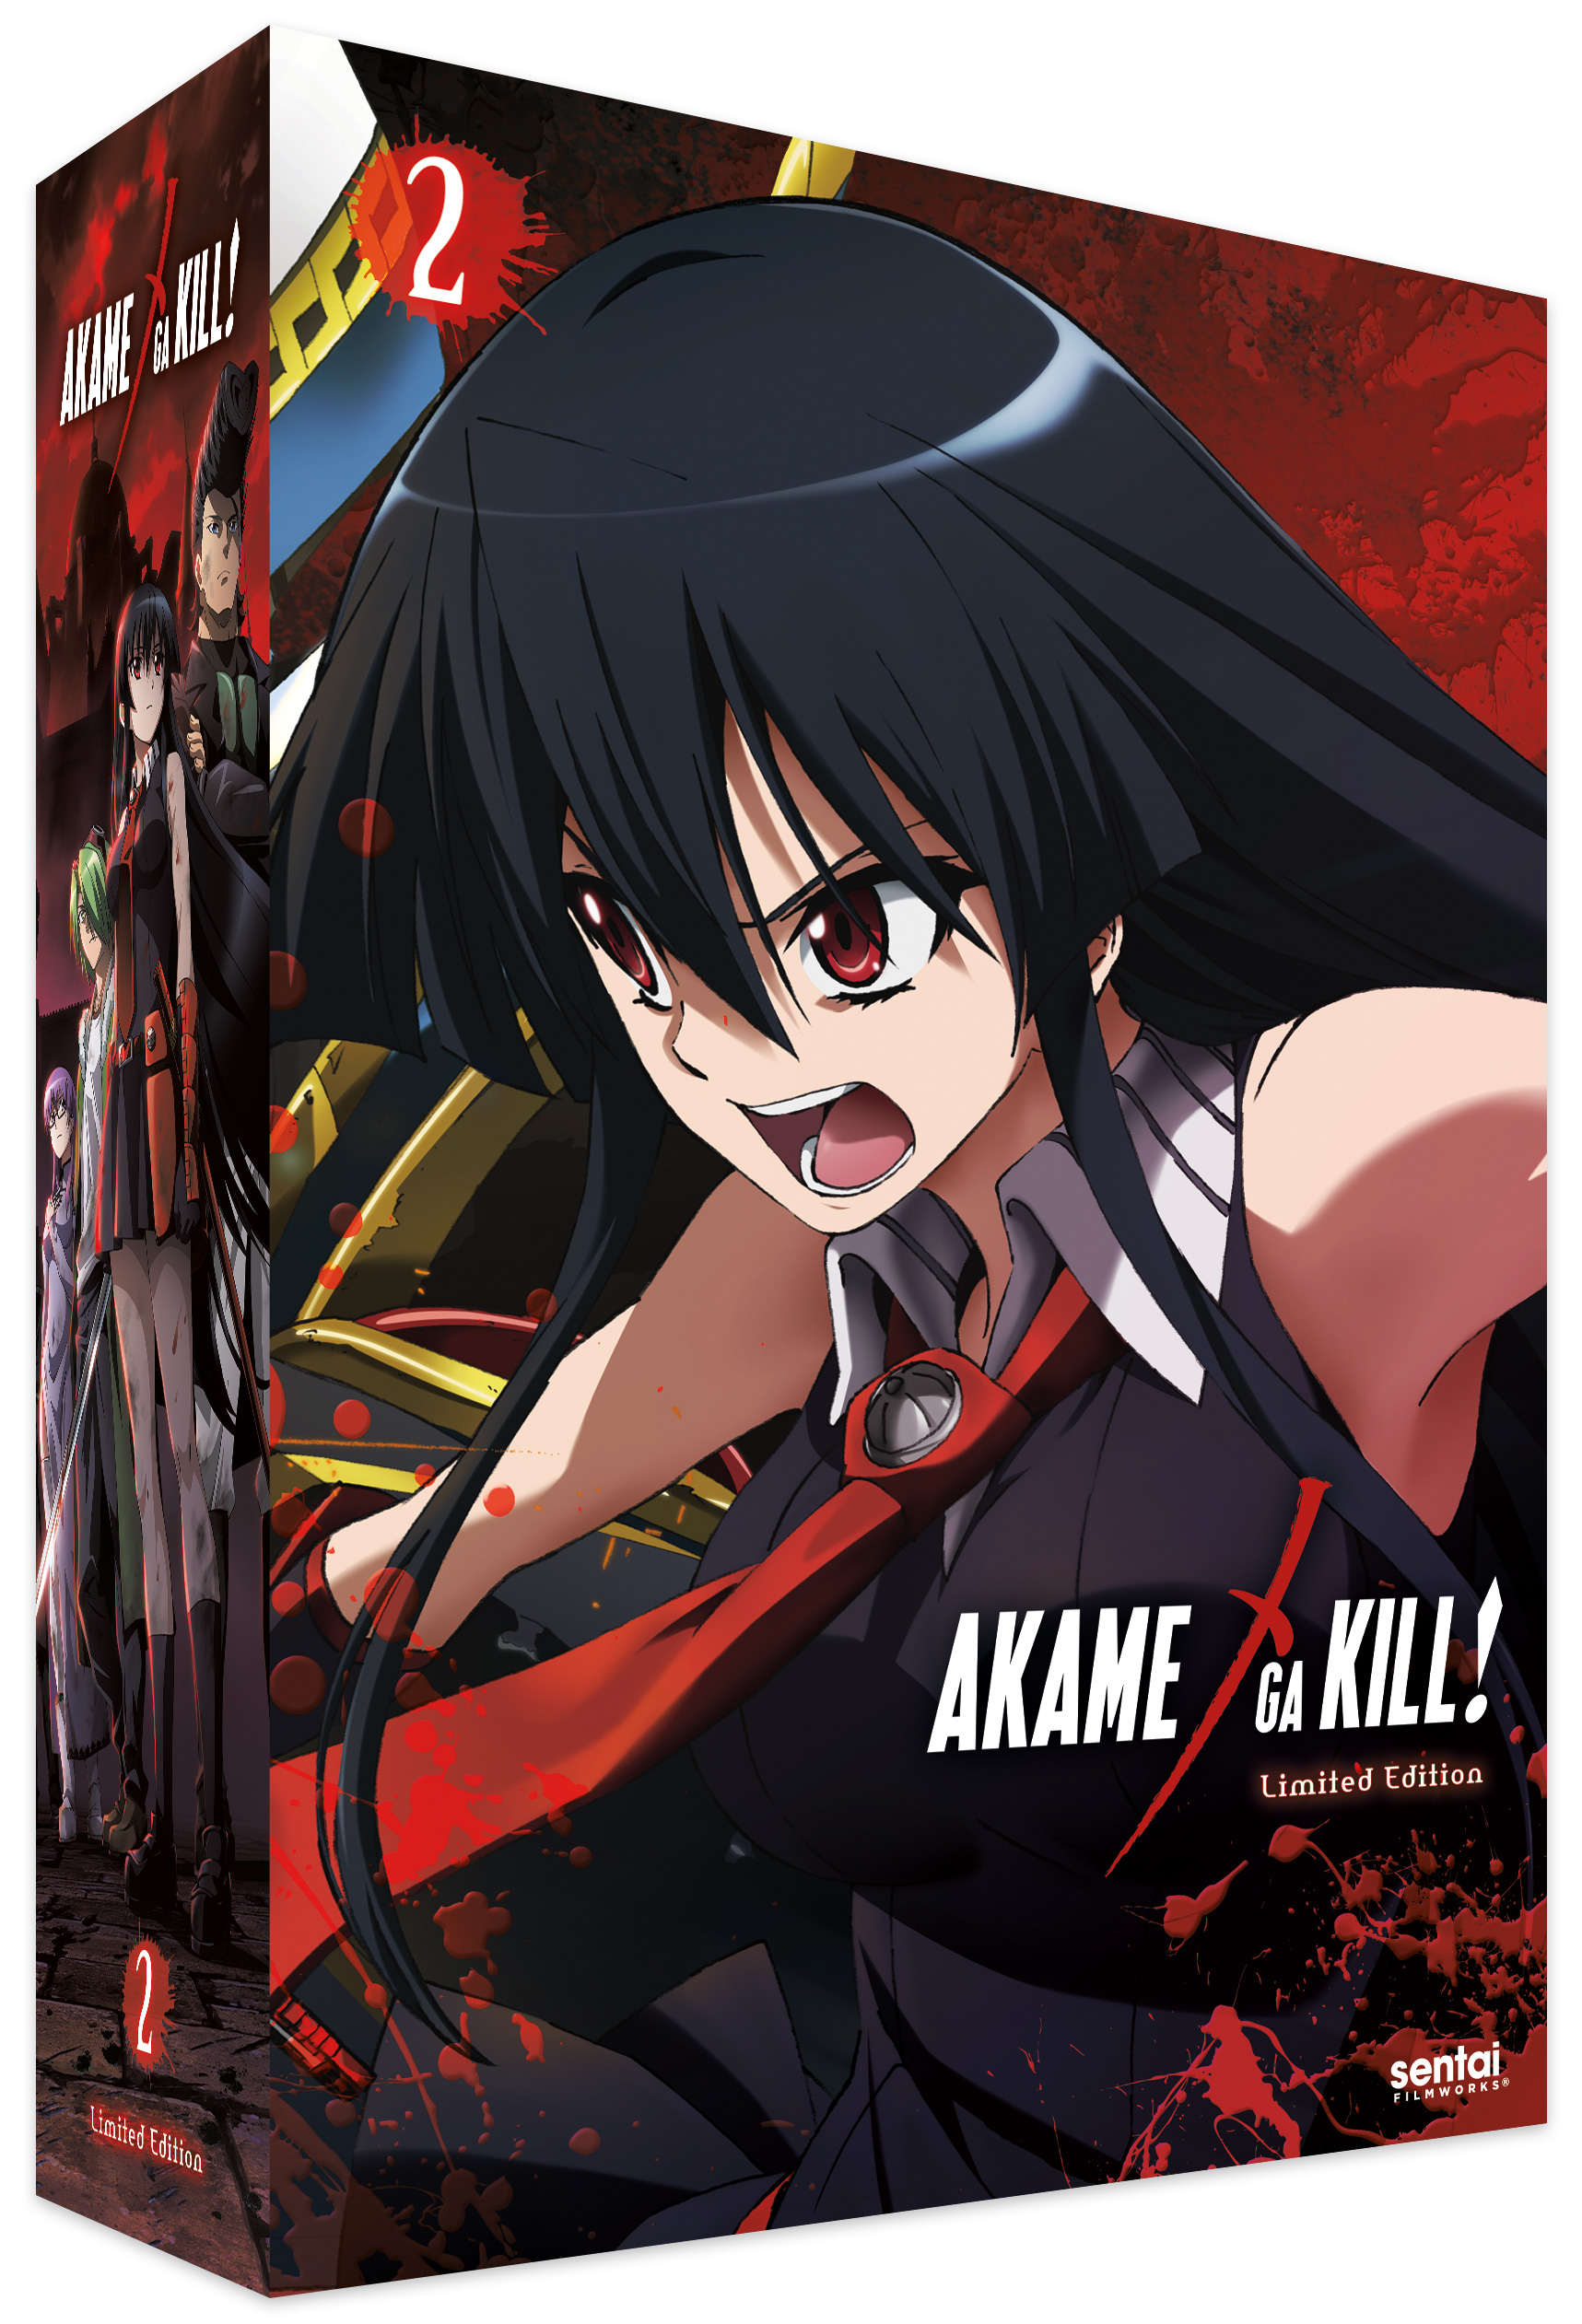 Akame ga Kill Collection 2 Limited Edition Blu-ray/DVD + CD 814131016782